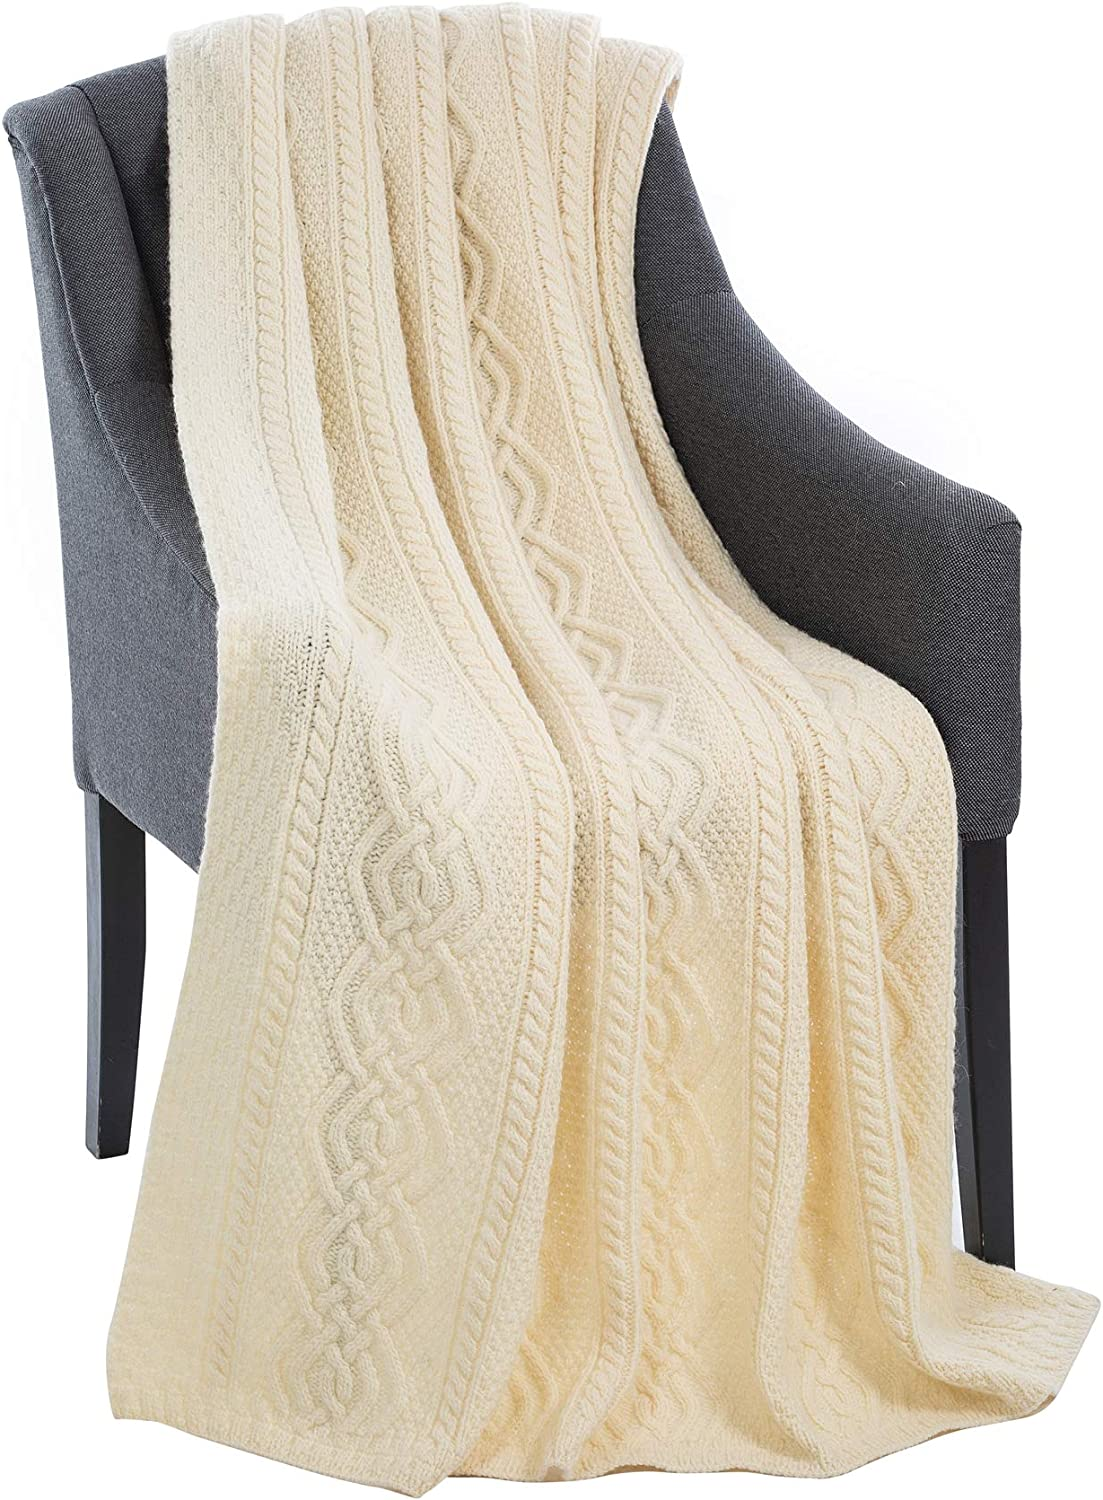 Luxurios Dara 100% Merino Wool Cable Knit Aran Bed & Couch Sofa Throw / Blanket (Natural) by 69 x 44 inches